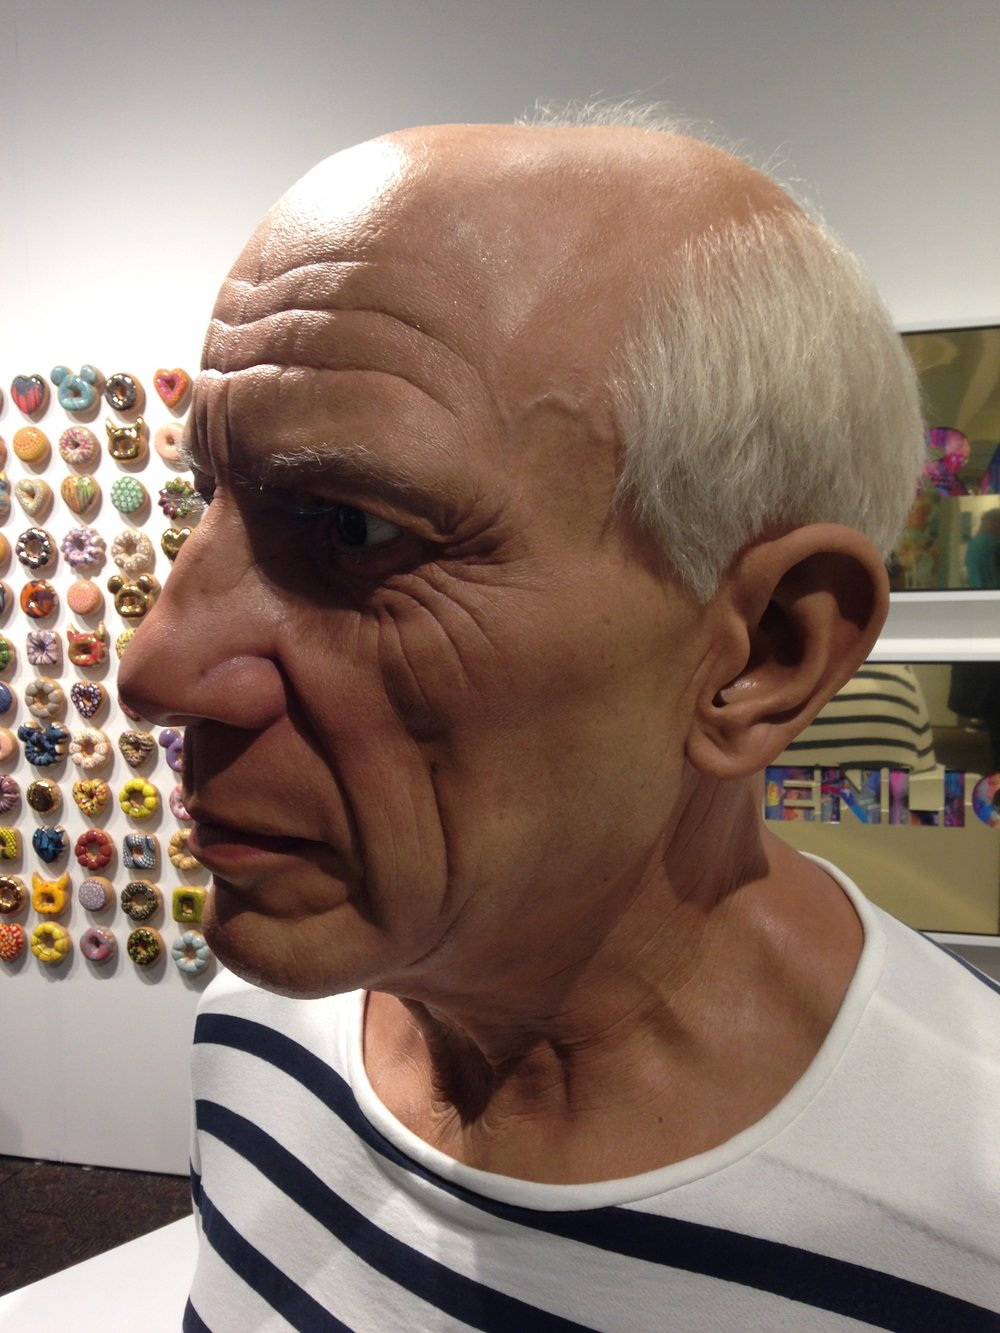 Jaime Salmon, Pablo Picasso, 2016,silicone, resin, acrylic, wood, pigment, fabric and hair